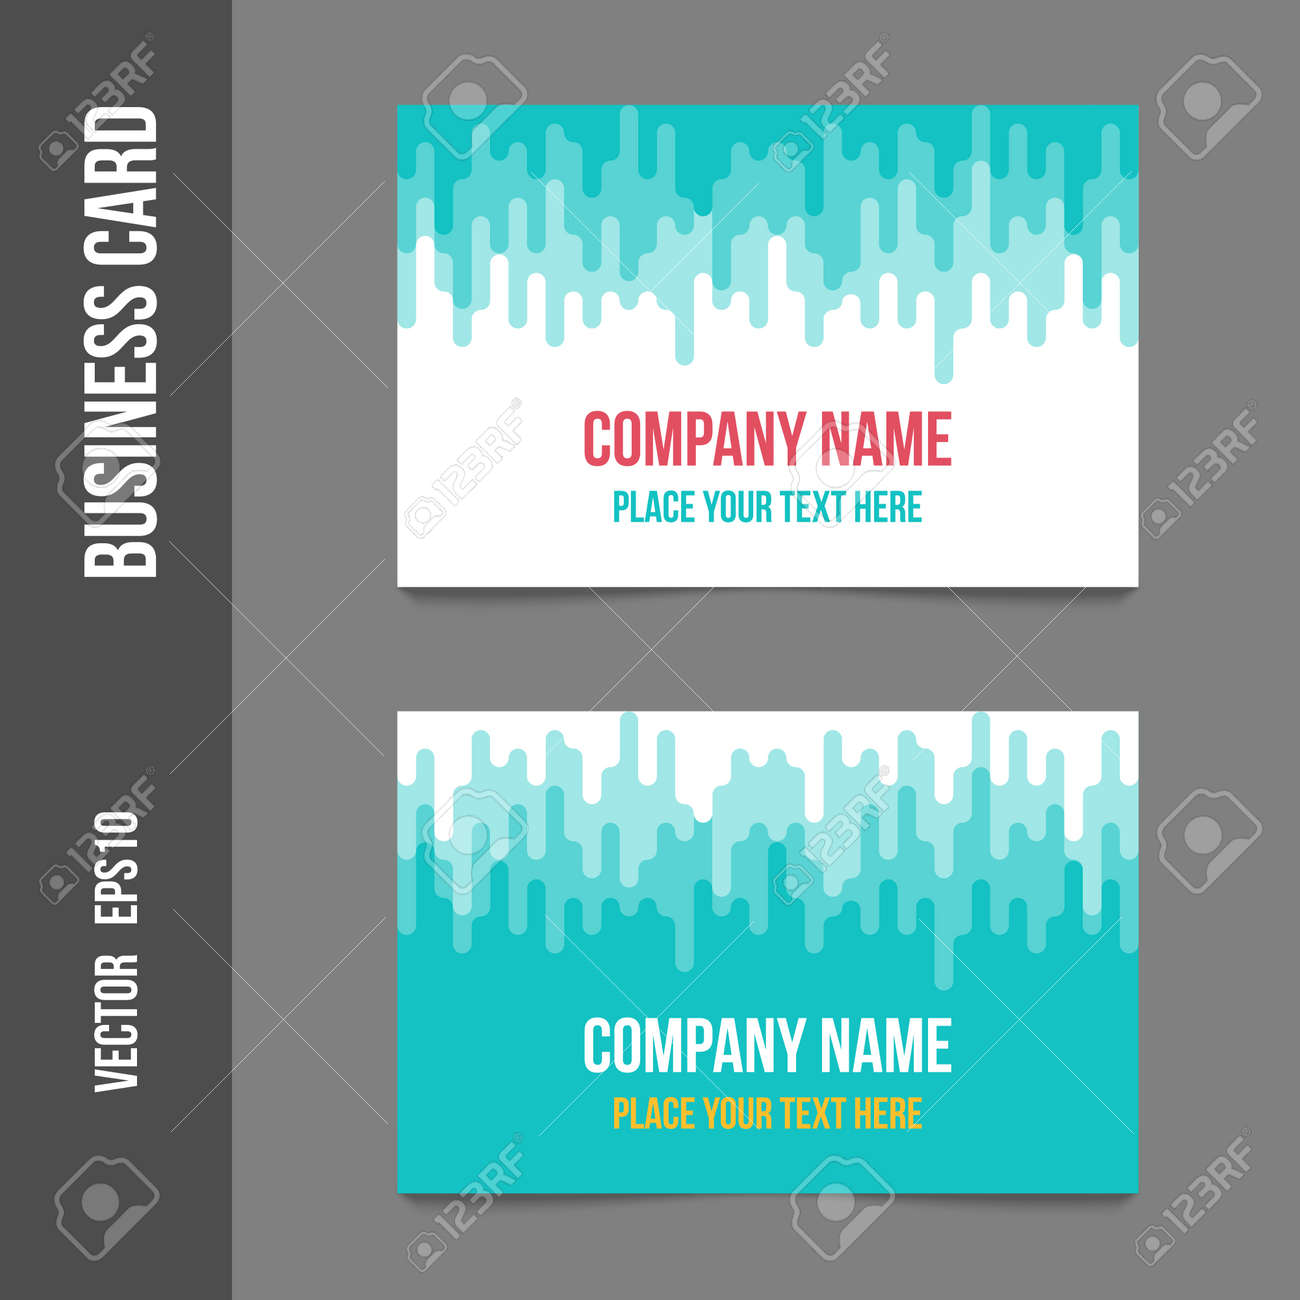 Corporate Identity Business Cards For Company Or Event Business